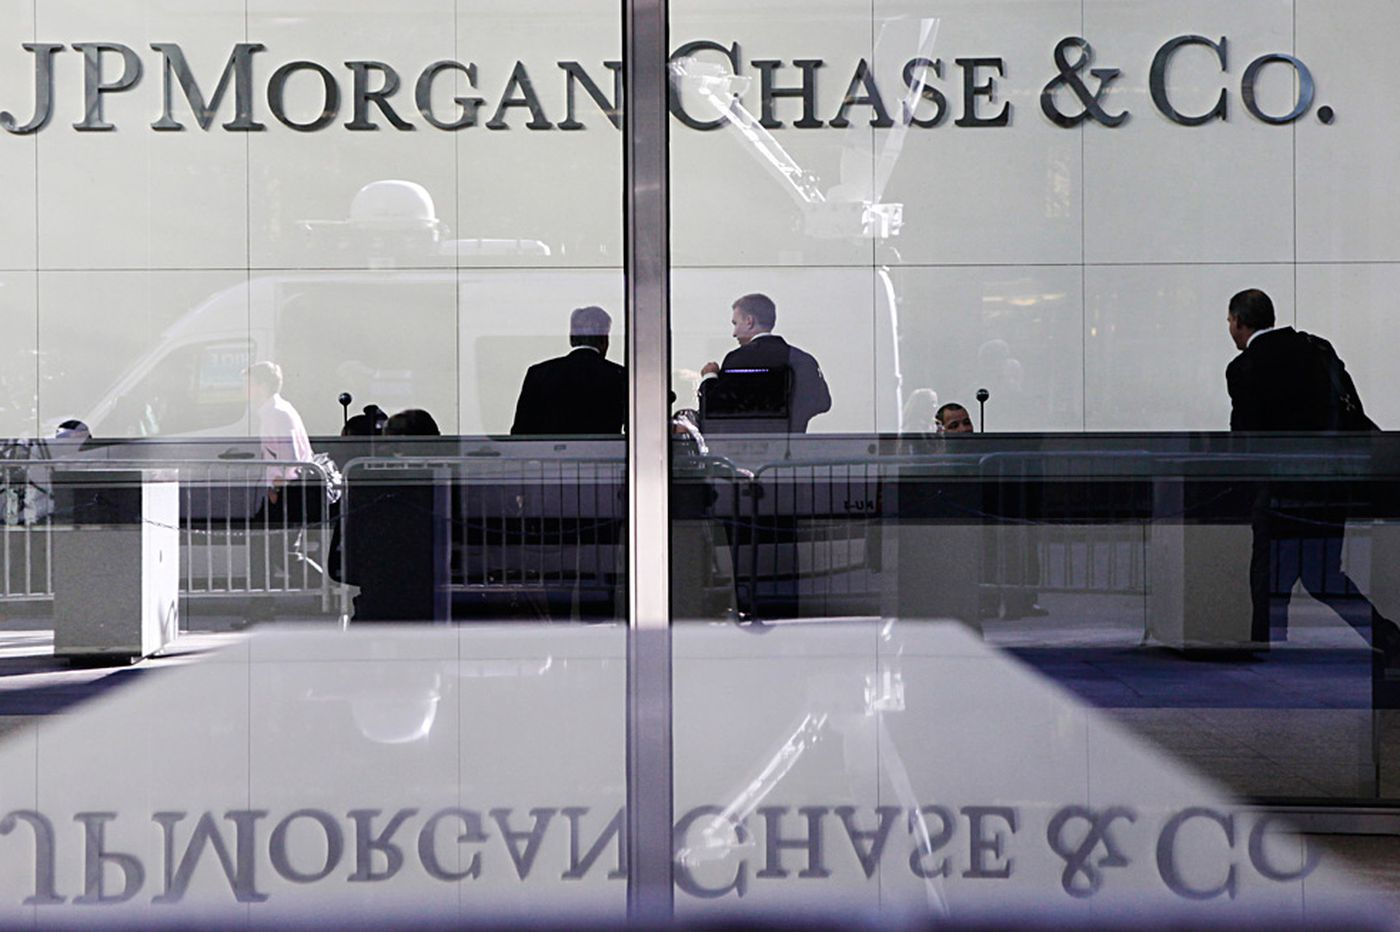 JPMorgan pledges $5 million to help diverse Philly workers and businesses